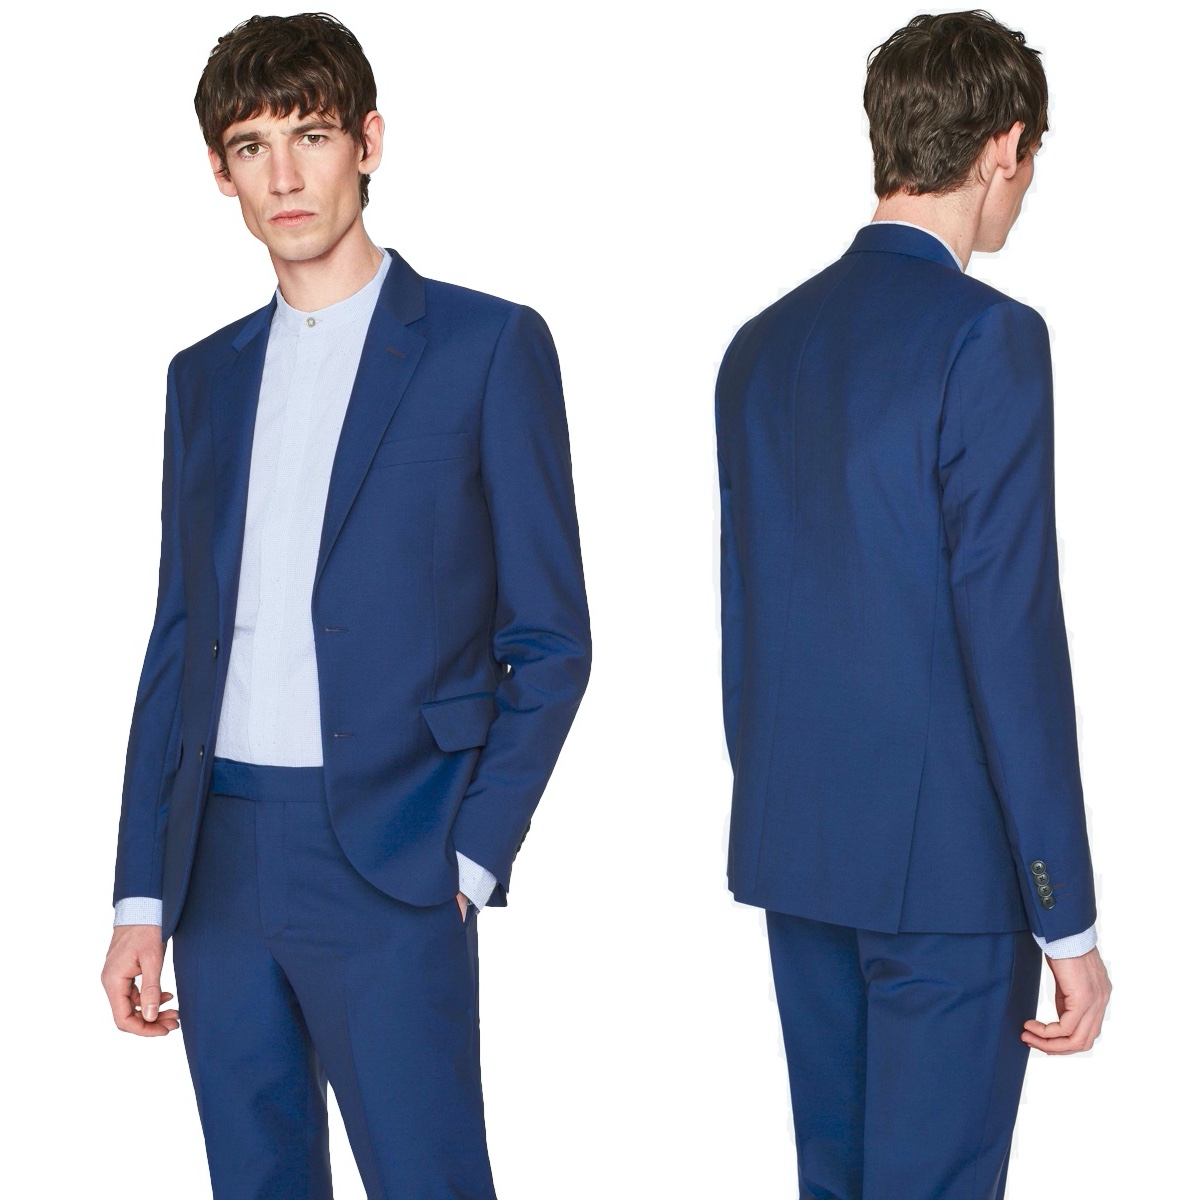 paul-smith-indigo-The-Soho-Tailored-Fit-Indigo-Wool-Mohair-Suit-A-Suit-To-Travel-In fit.jpg